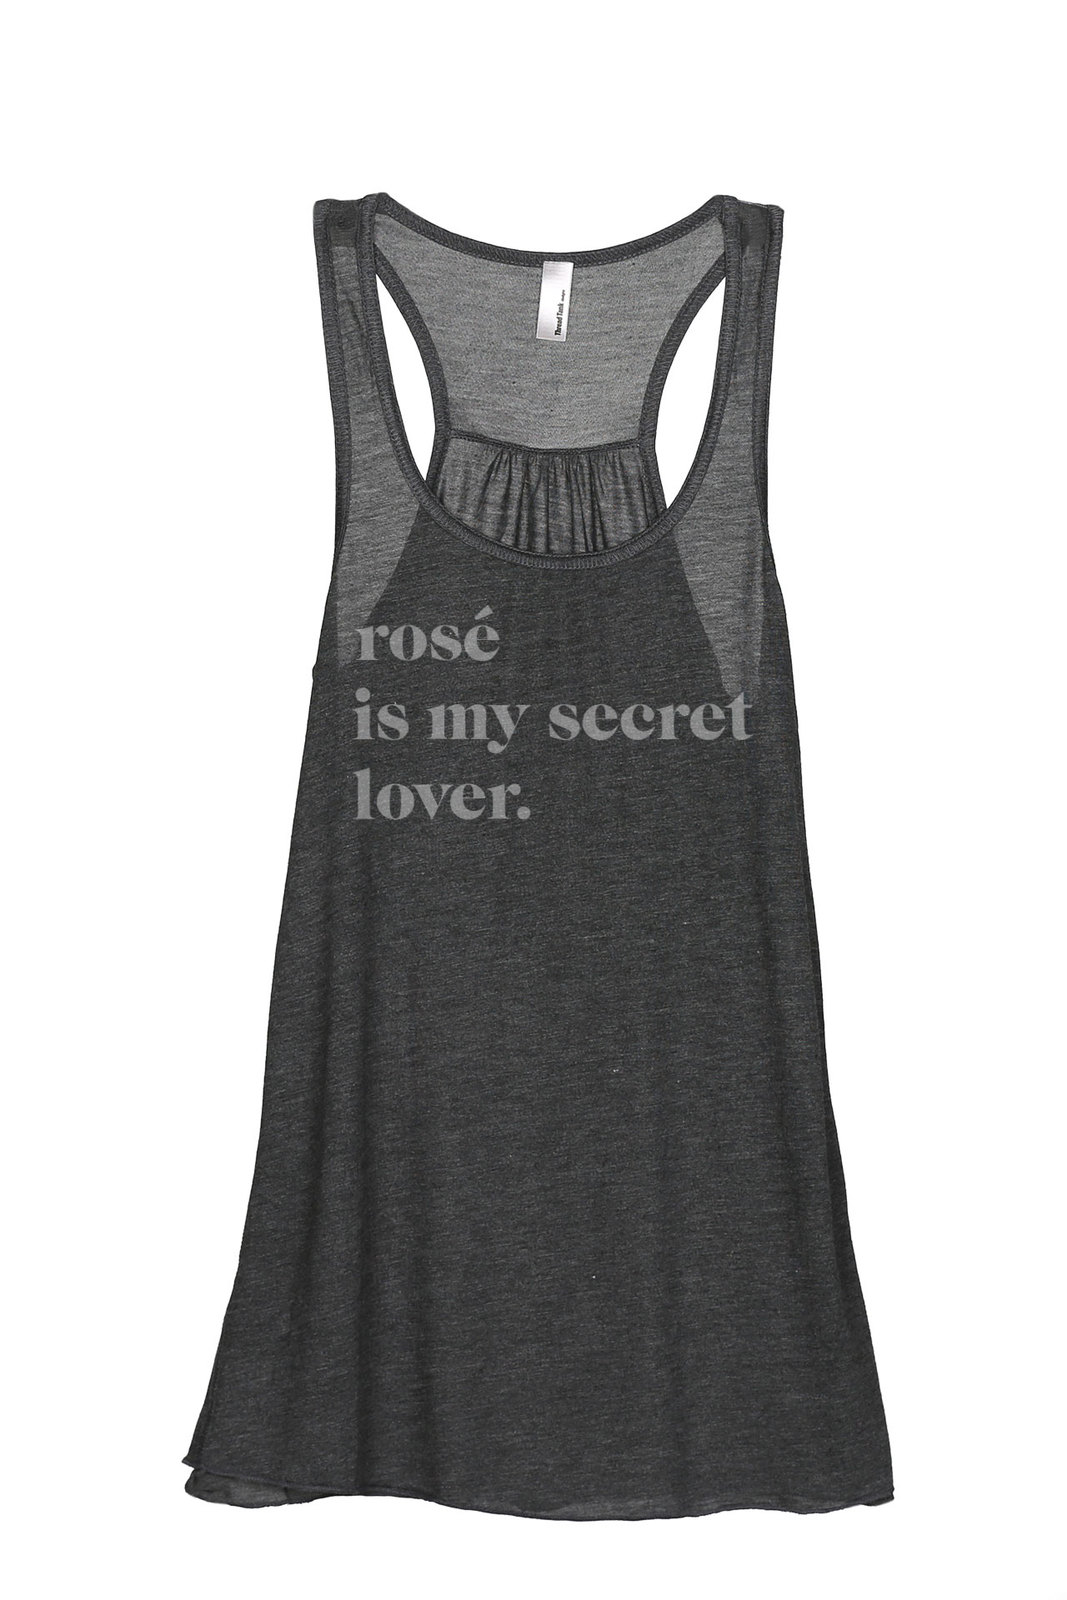 Thread Tank Rose Is My Secret Lover Women's Sleeveless Flowy Racerback Tank Top